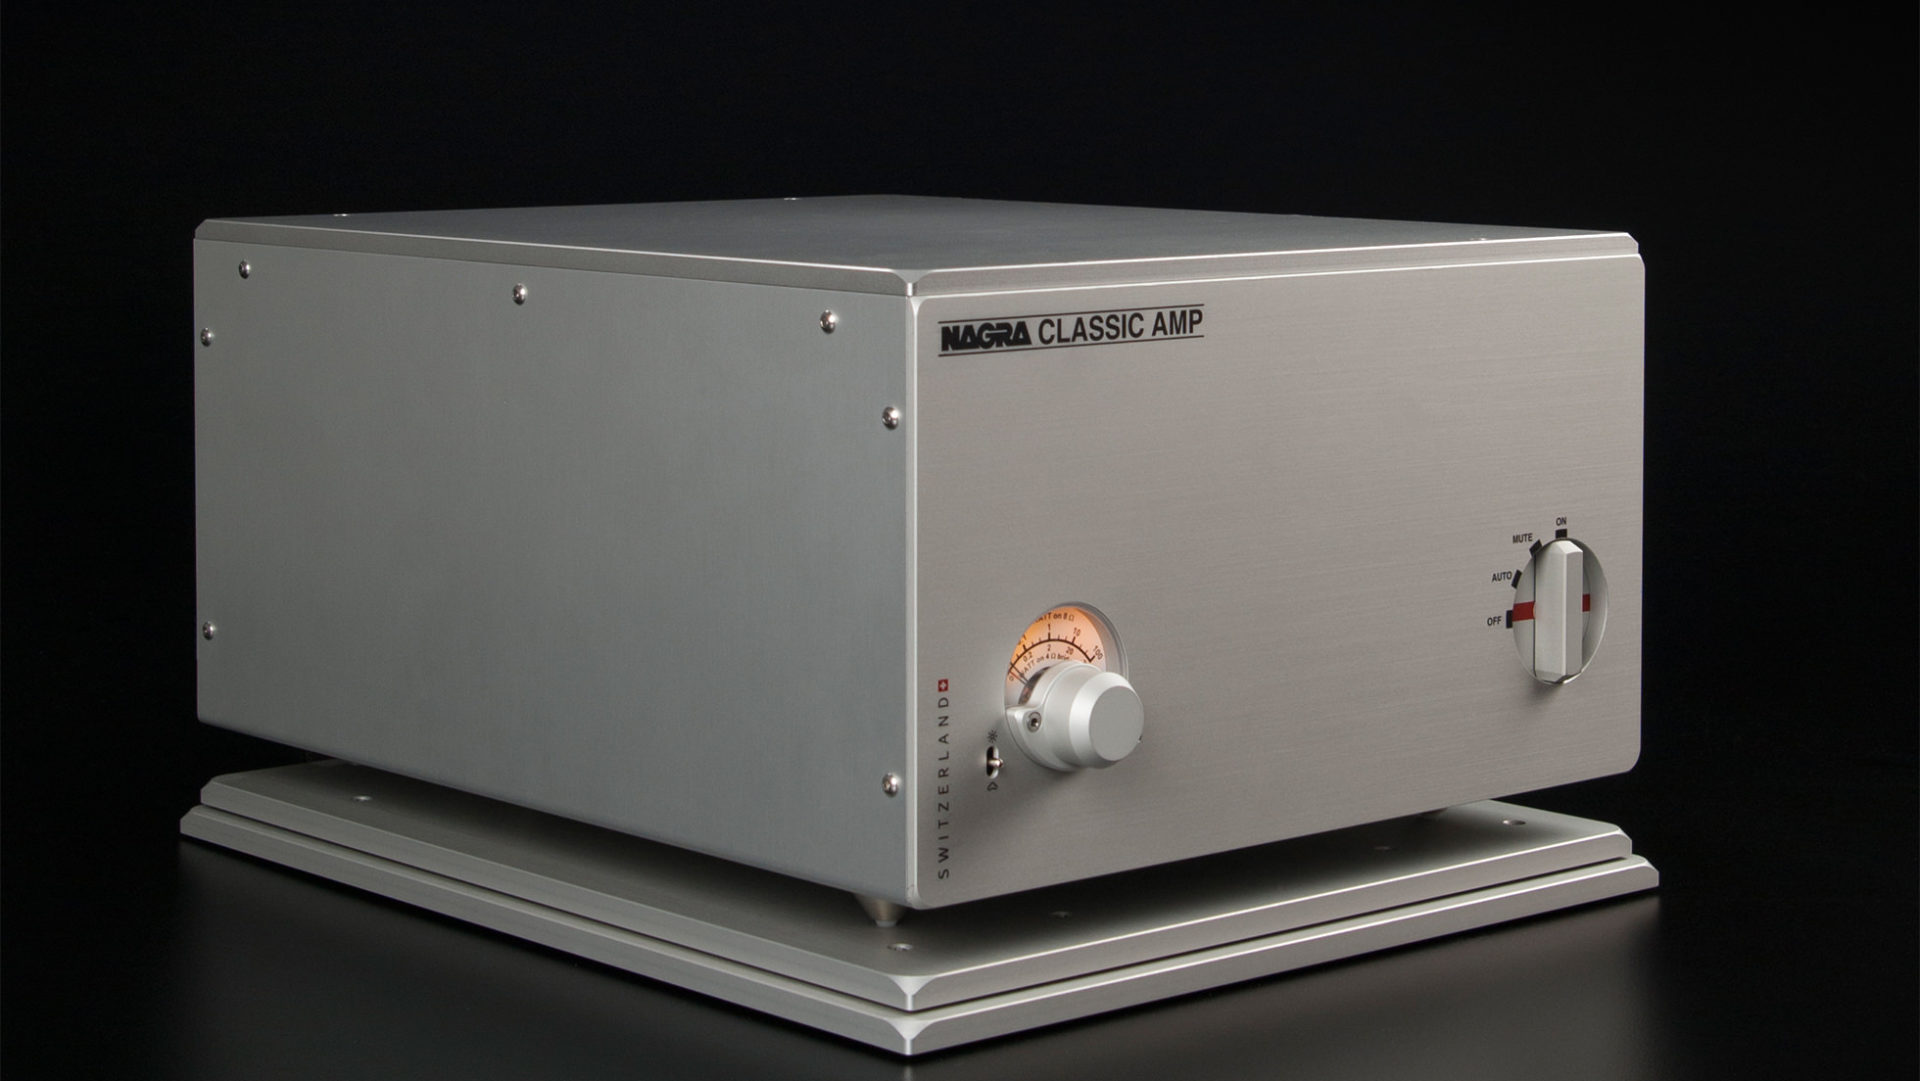 Nagra classic AMP 经典功放 modulo 表头 best high end amplifier 最高端放大器 front vfs